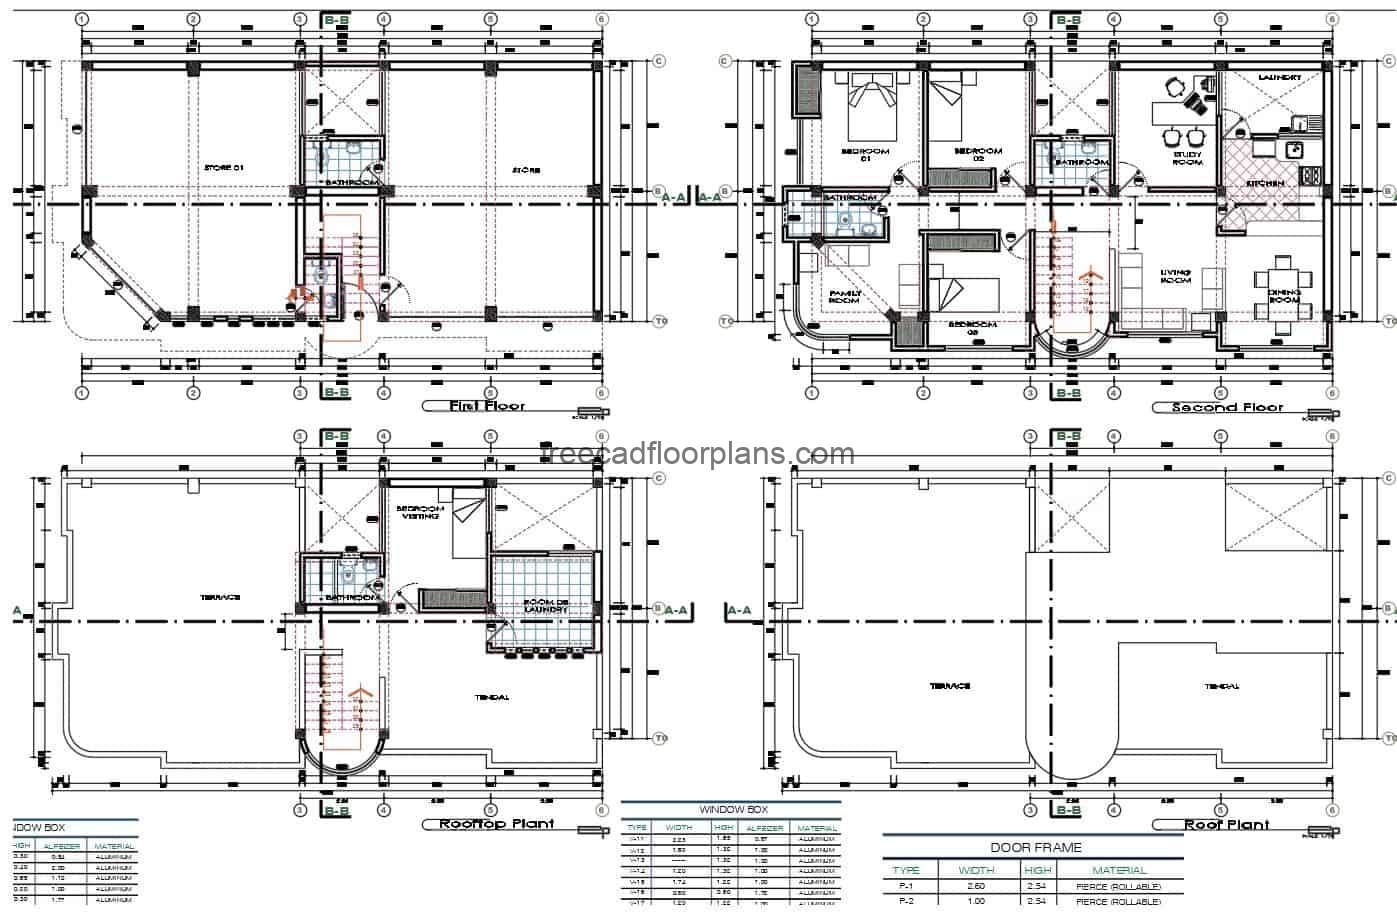 House and commerce mixed, design in two levels of commercial premises and residence in second level, architectural plant and elevations, file for free download in DWG format.